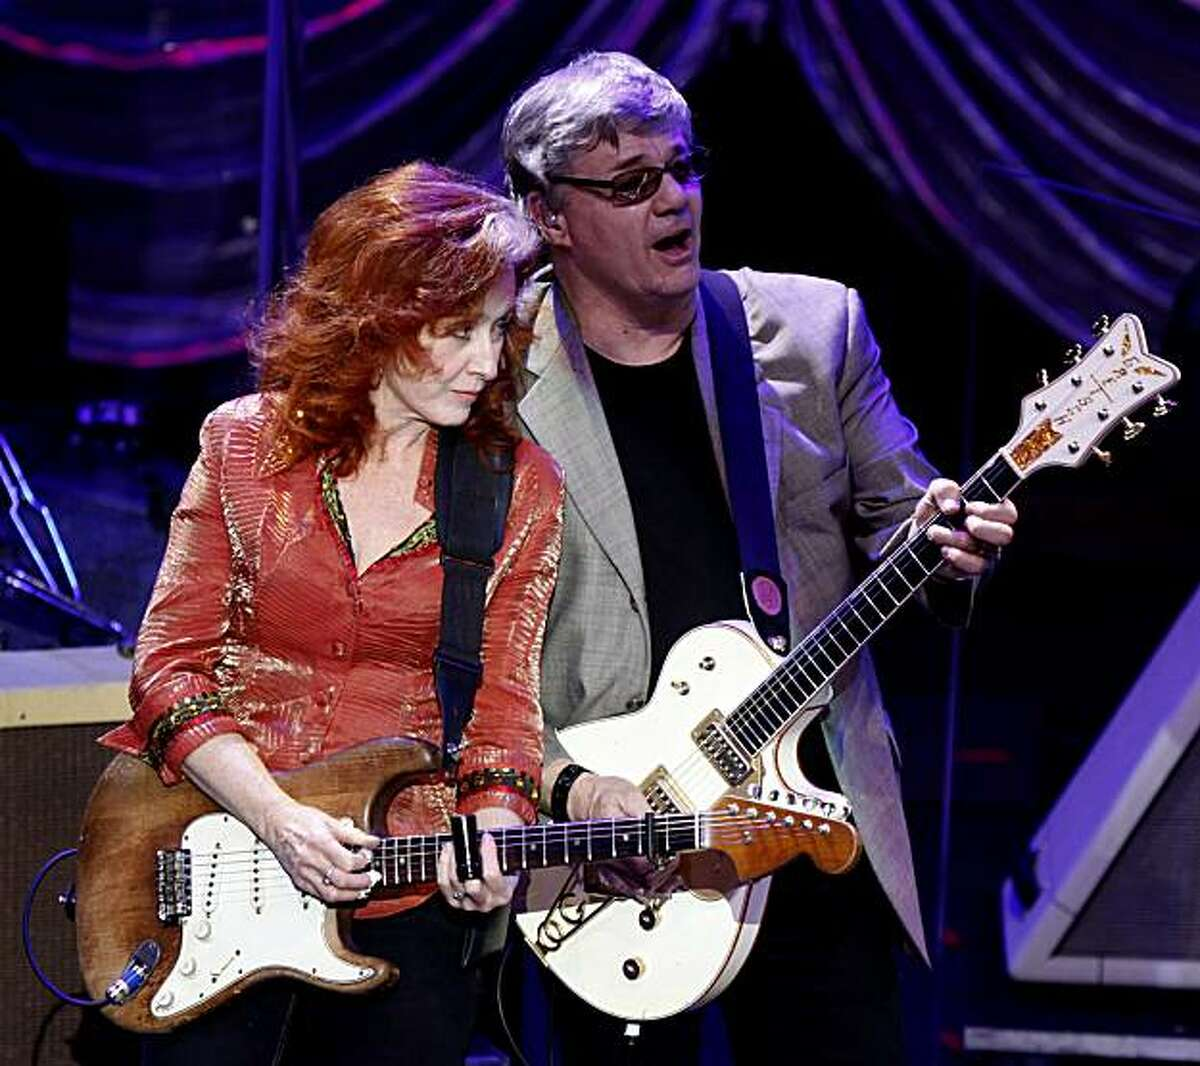 Steve Miller from the Steve Miller Band performs with Bonnie Raitt at the Fox Theater in downtown Oakland during a tribute concert for the late Bay Area harmonic legend Norton Buffalo. By Lance Iversen/The Chronicle